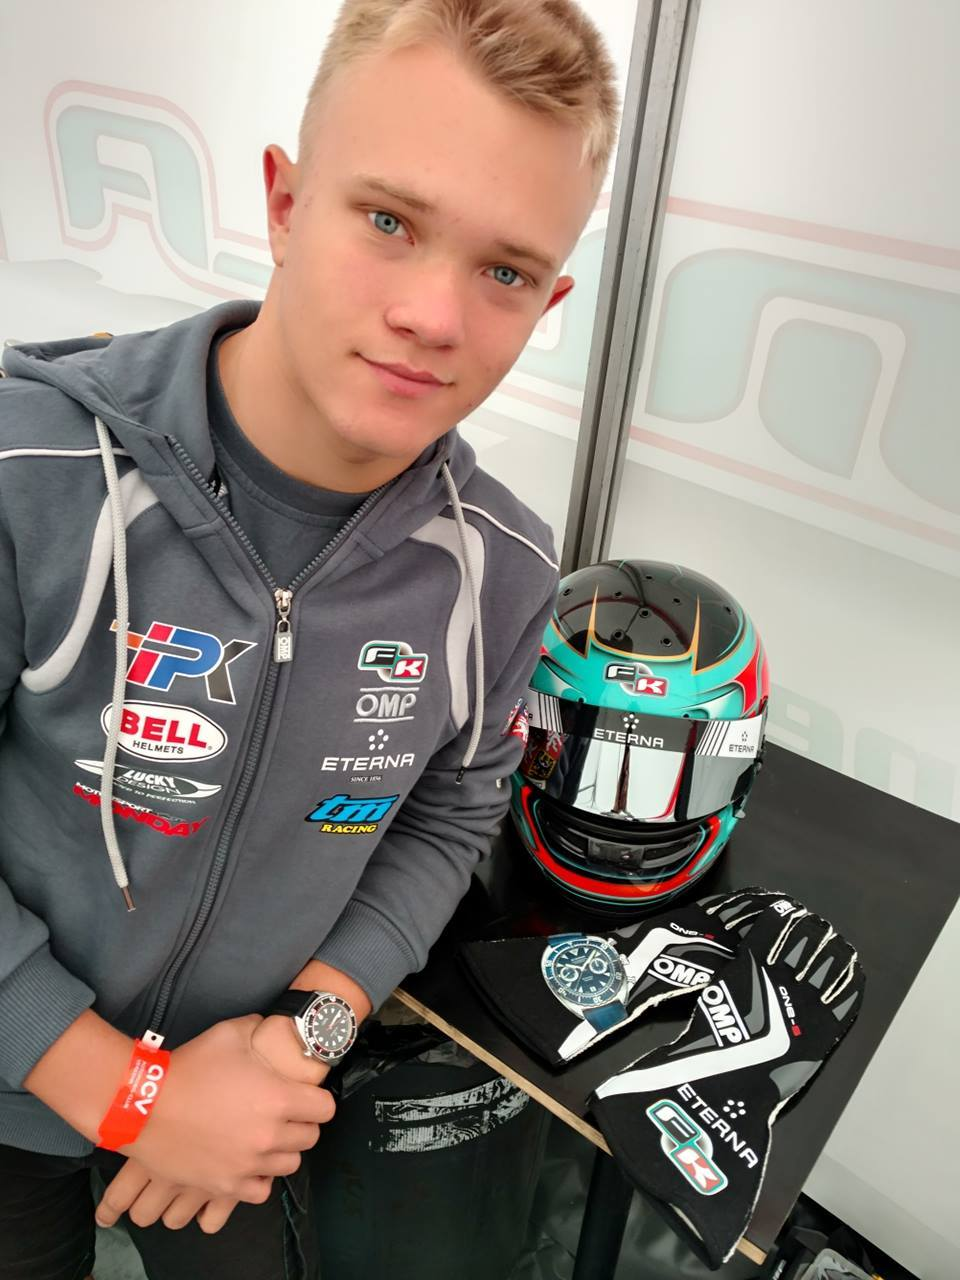 [TEAM NEWS] PETR PTACEK CONFIRMS F4 DEBUT IN ABU DHABI